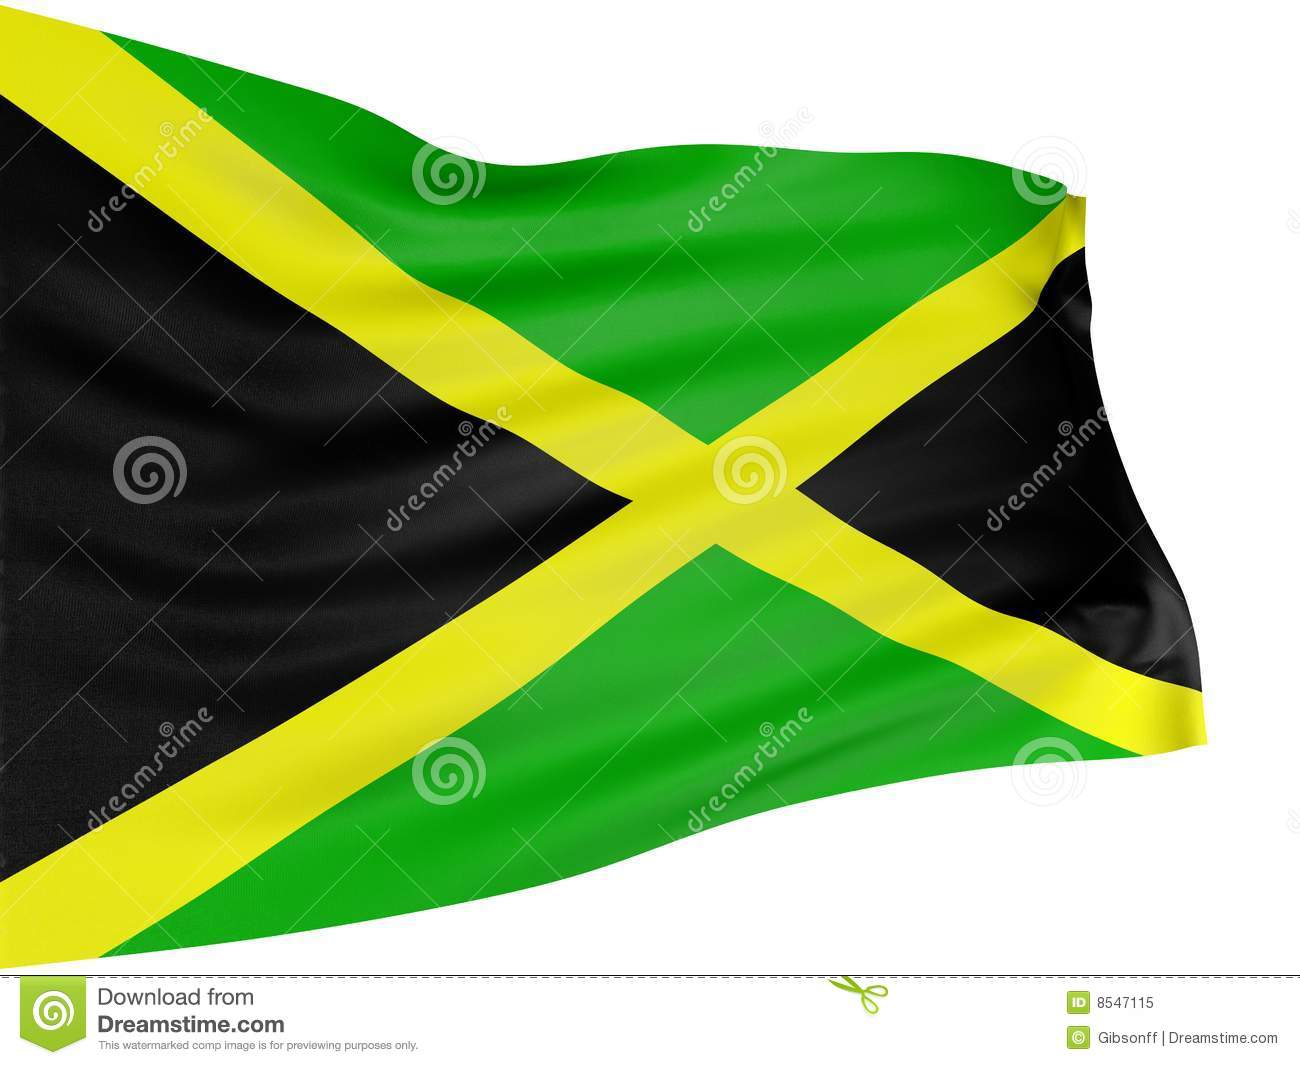 3d Jamaican Flag Royalty Free Stock Photo Image 8547115